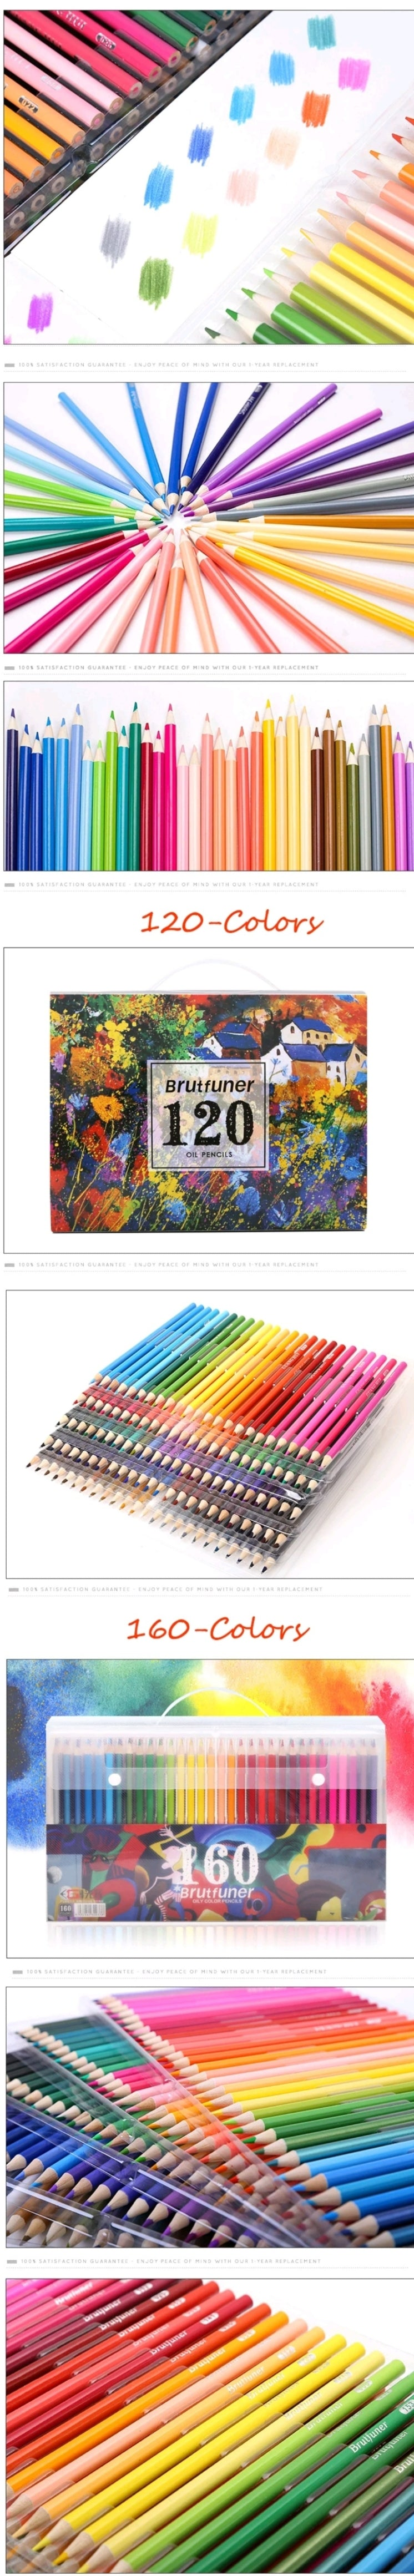 Assorted color pencils set of 120 and 160